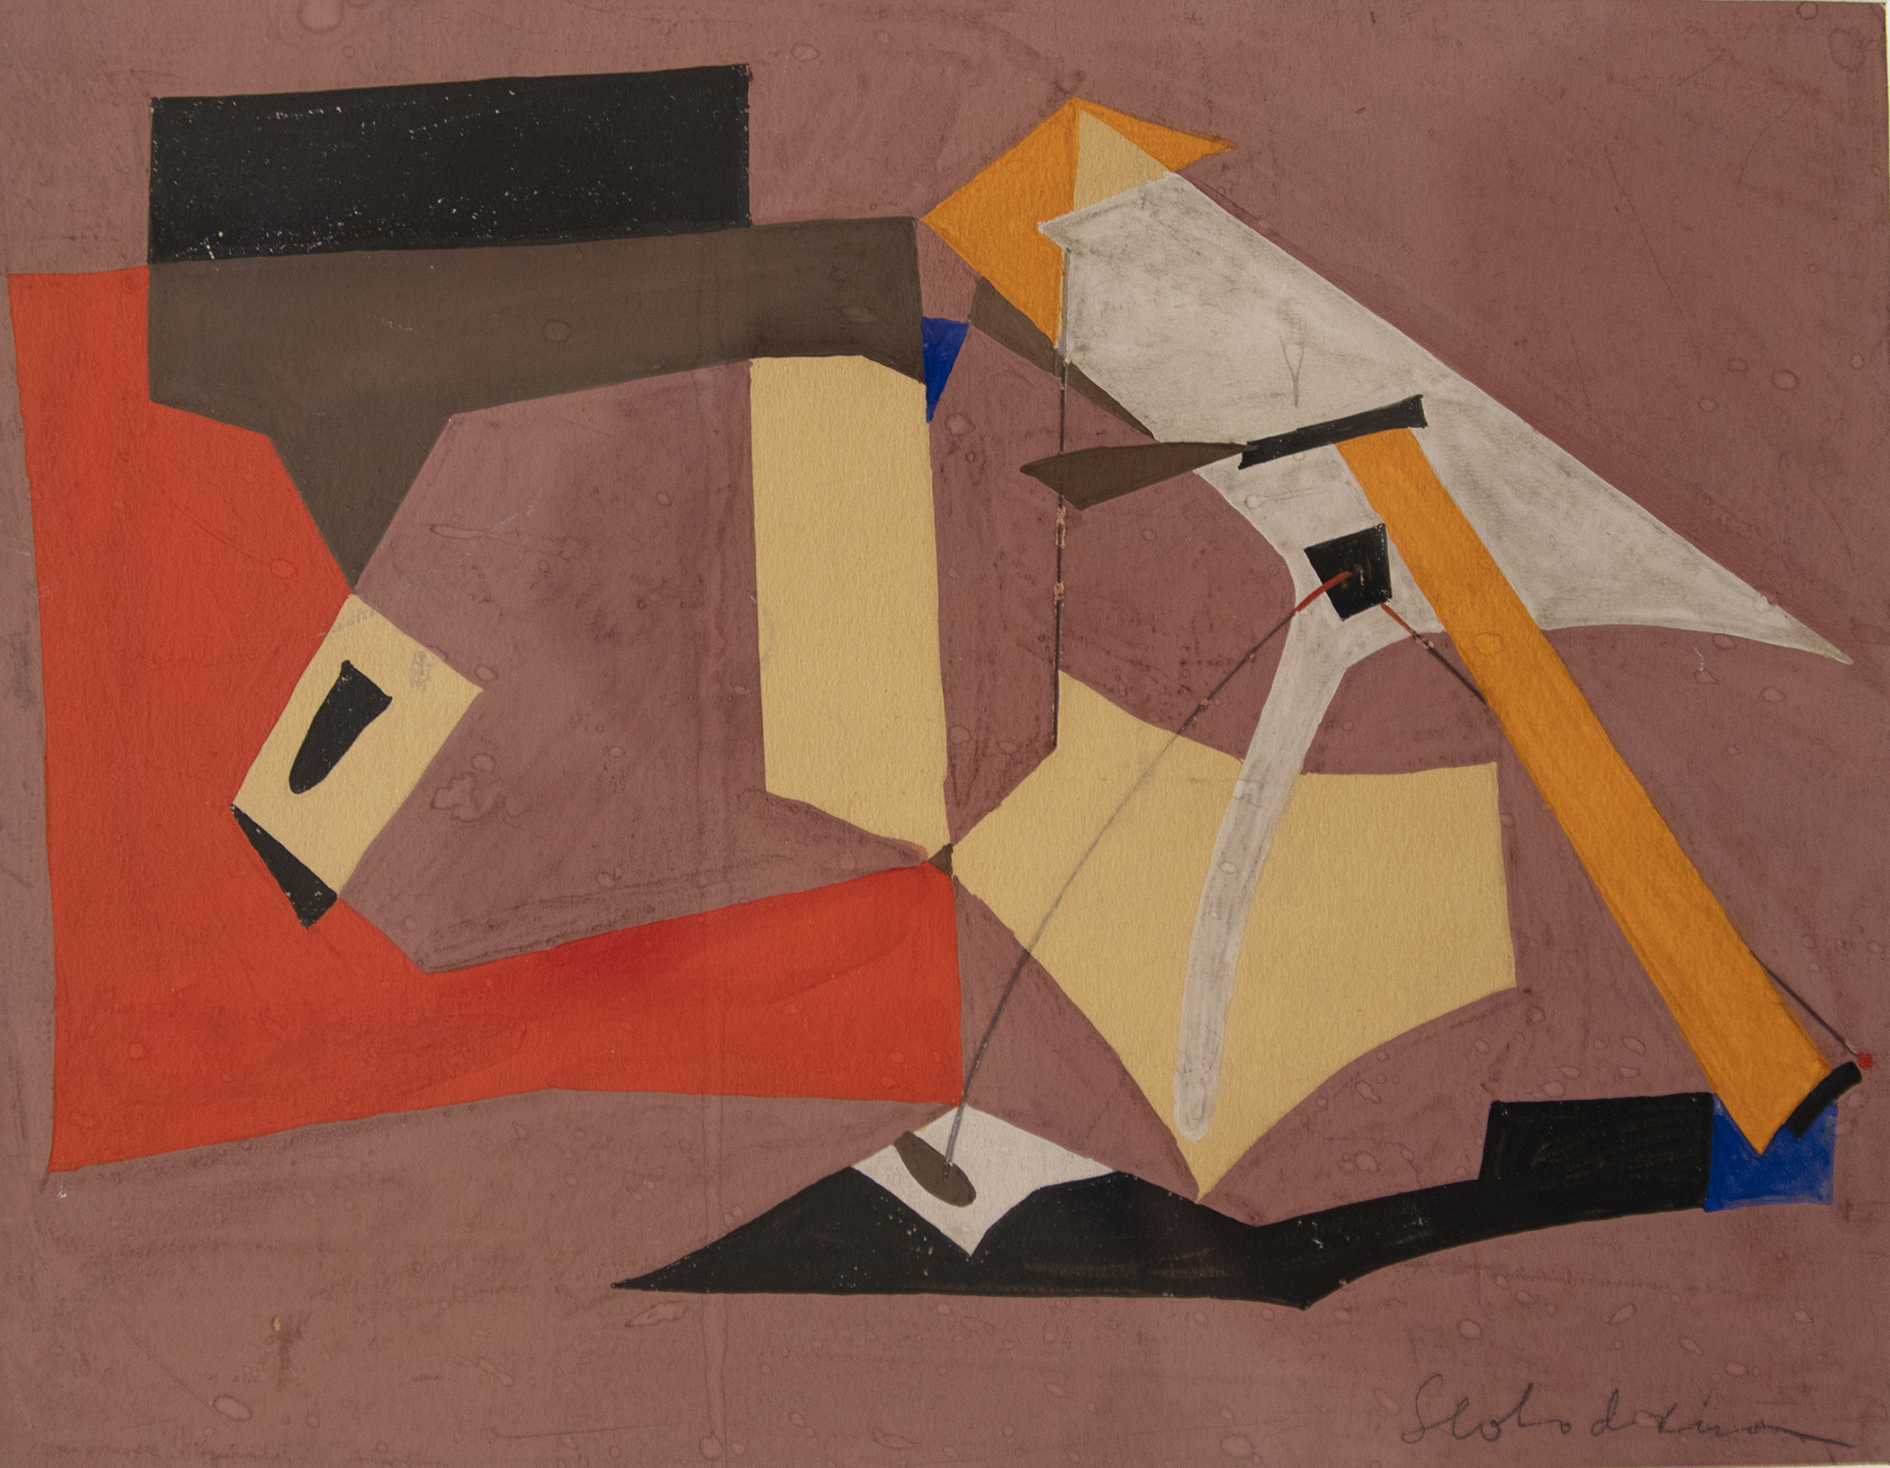 Esphyr Slobodkina, The Red L Abstraction (1940),